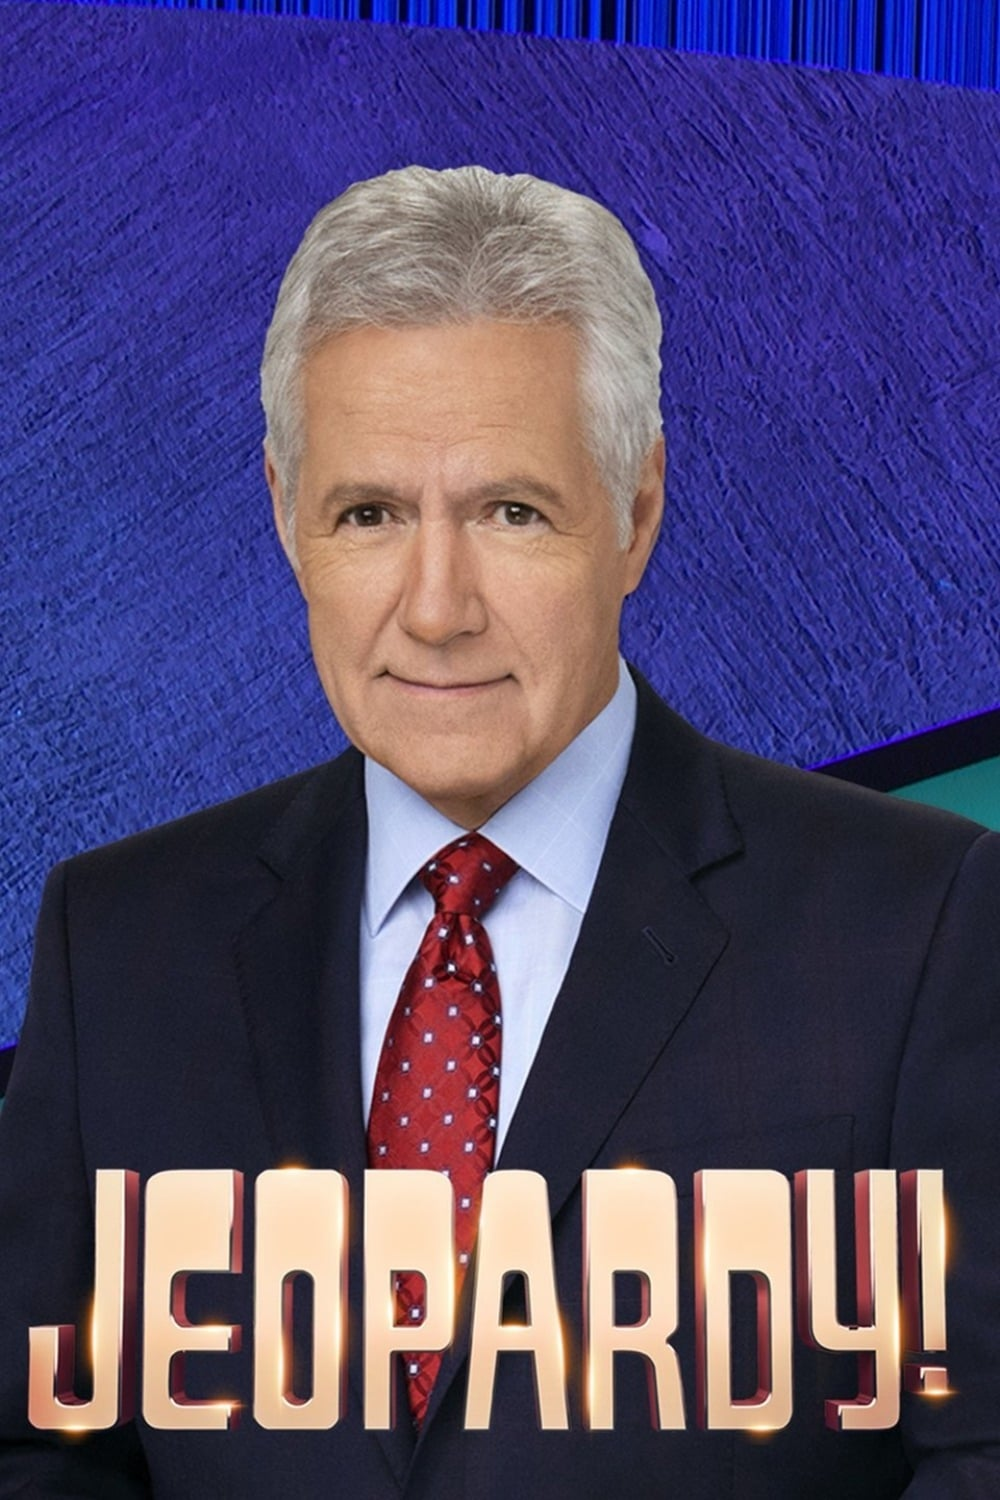 image for Jeopardy!